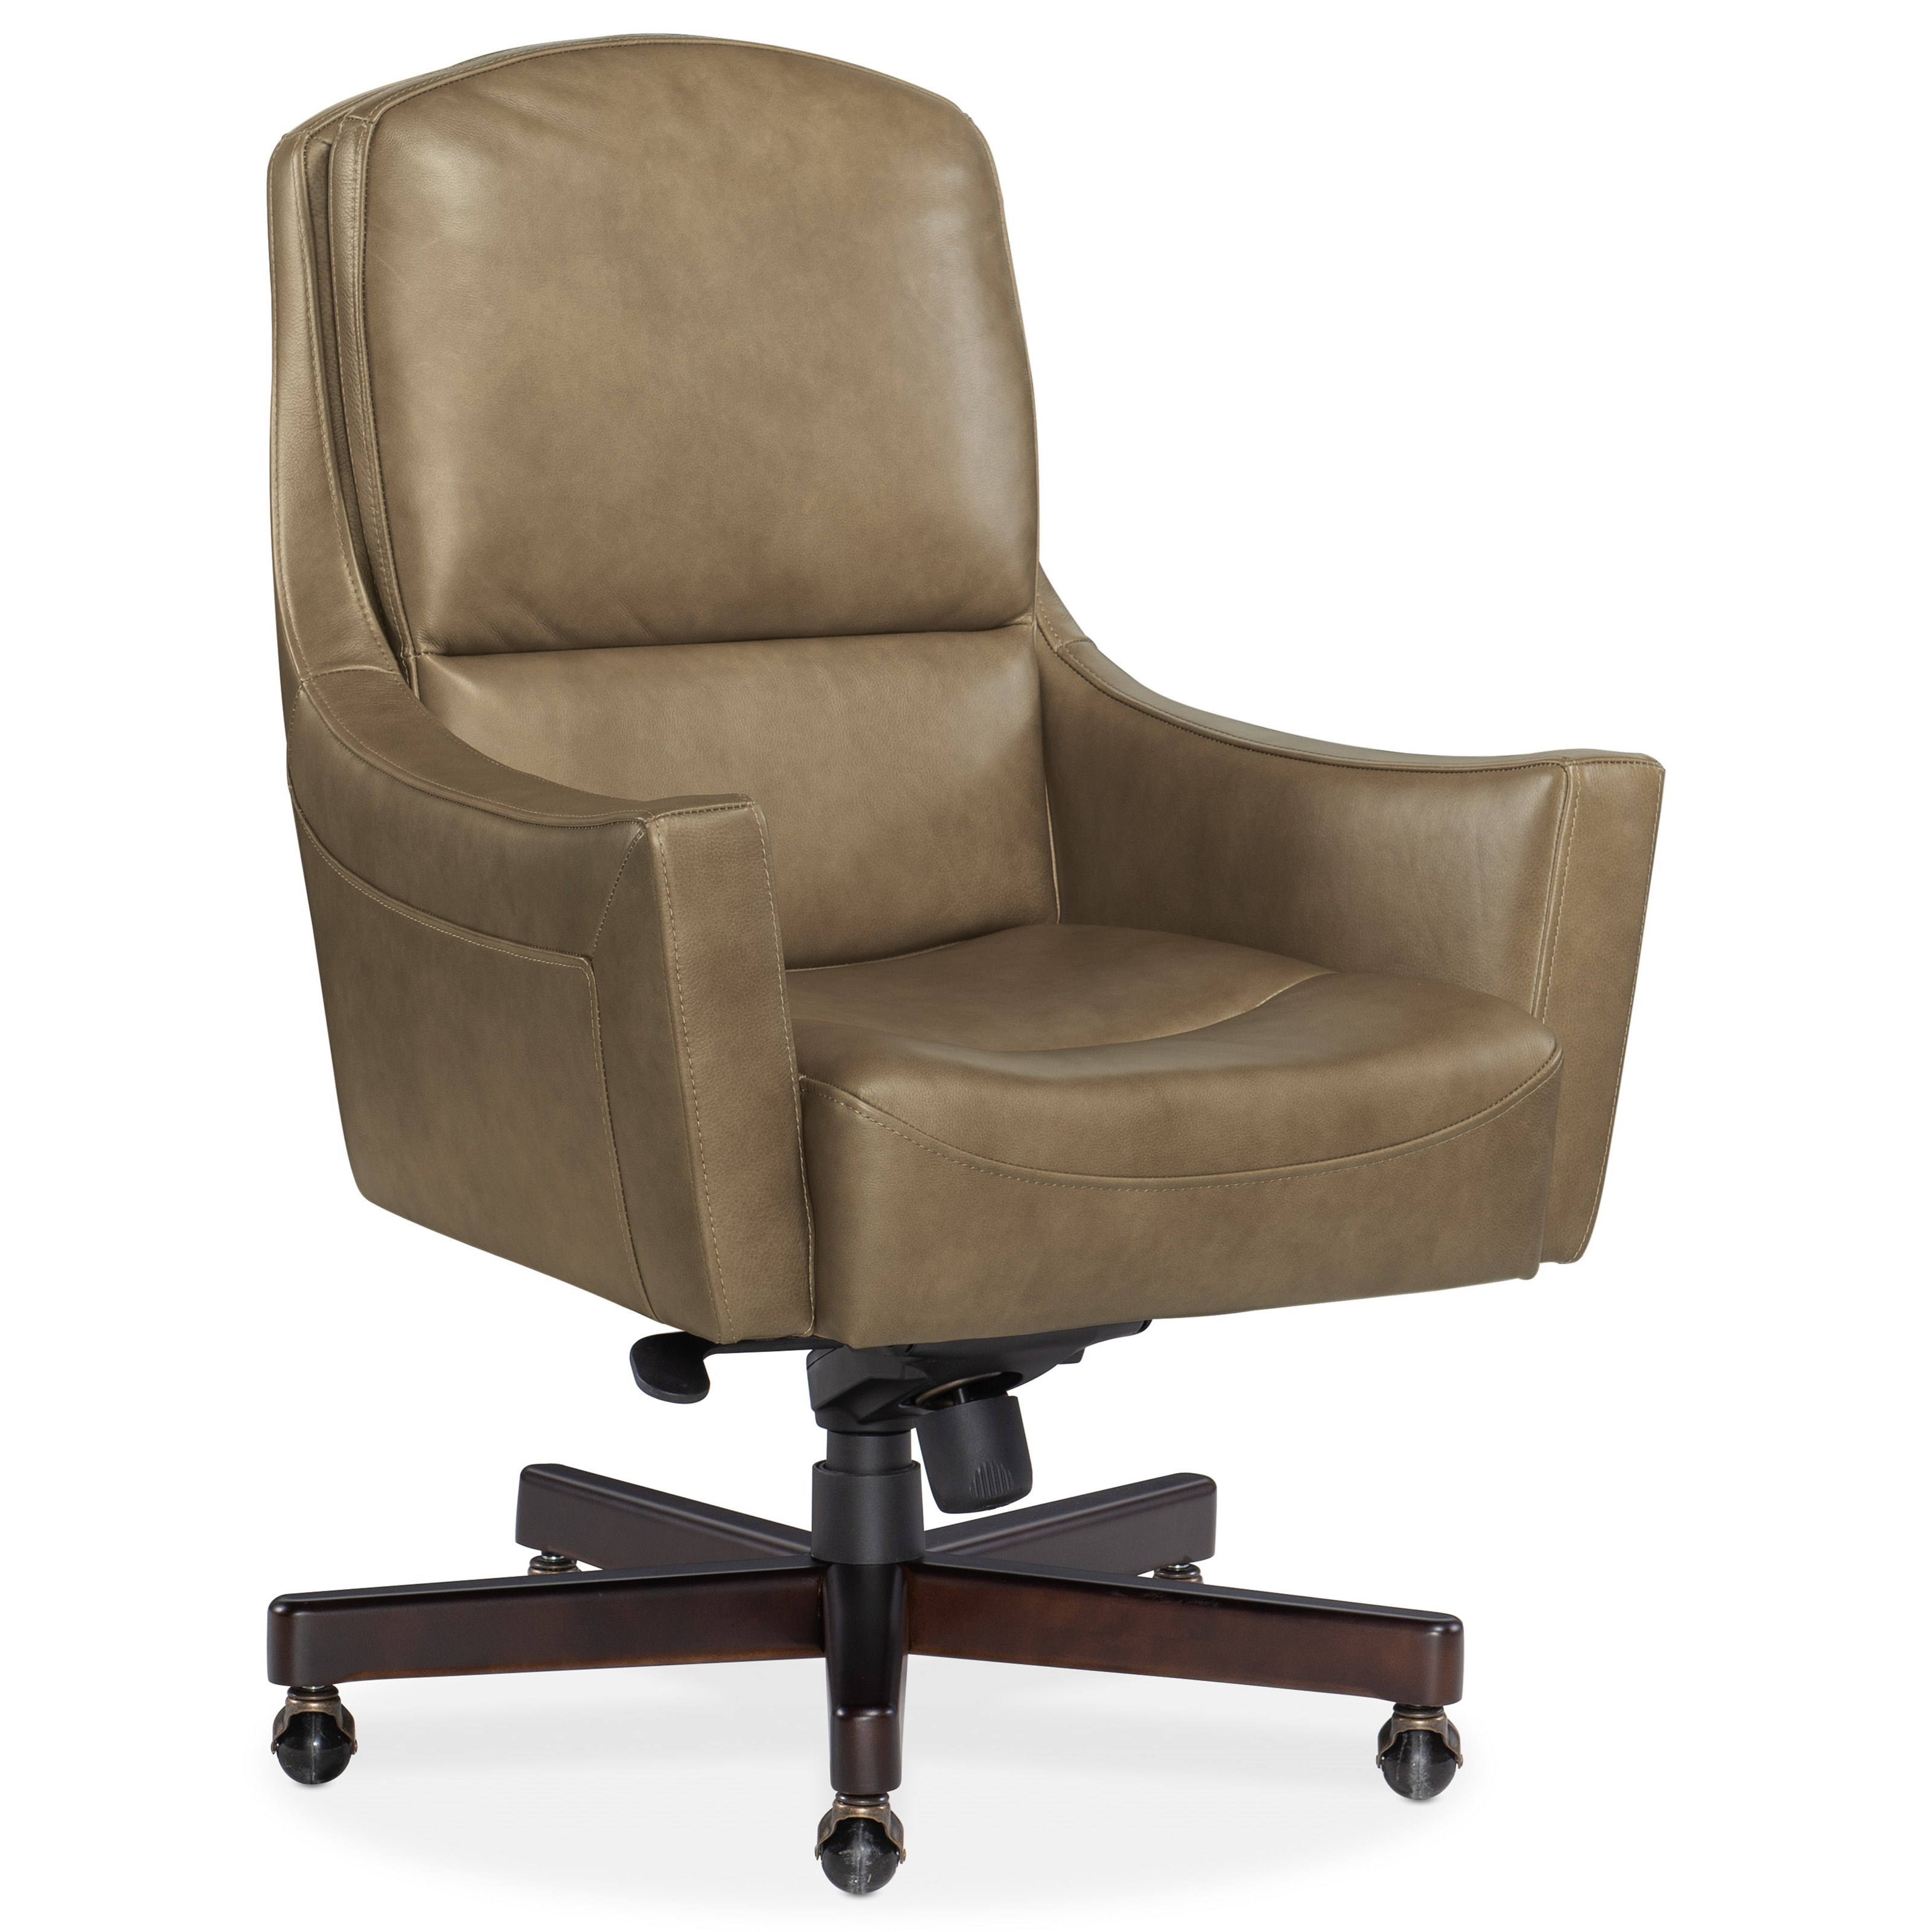 Executive Seating Wasila Executive Swivel Tilt Chair by Hooker Furniture at Baer's Furniture